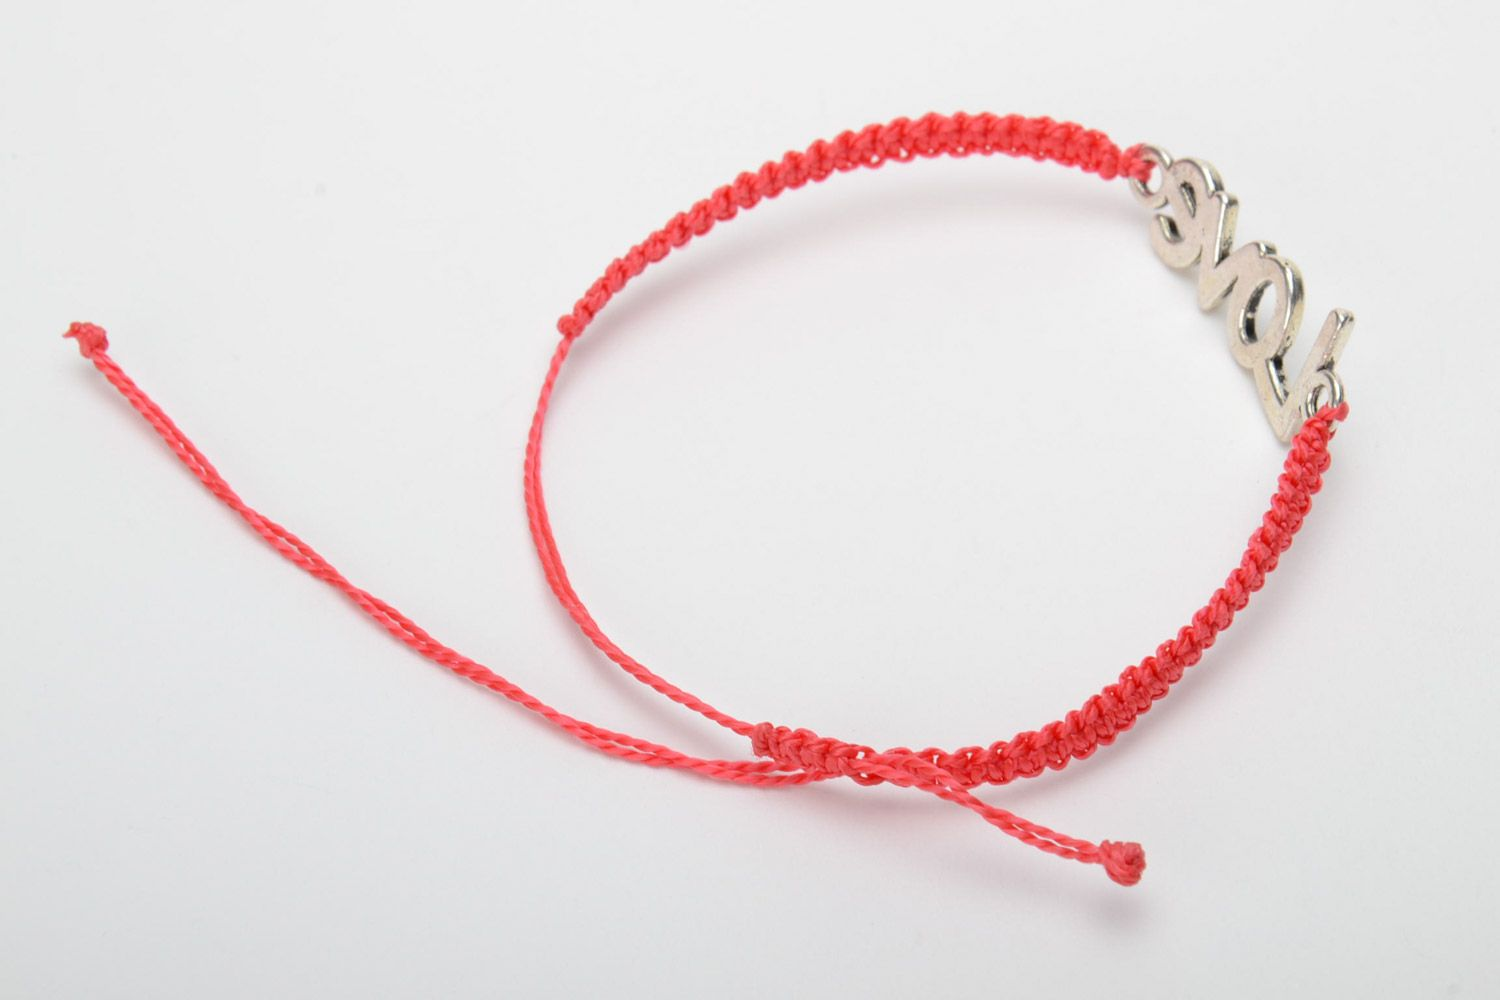 Handmade women's woven cord bracelet of red color with metal charm lettering photo 4